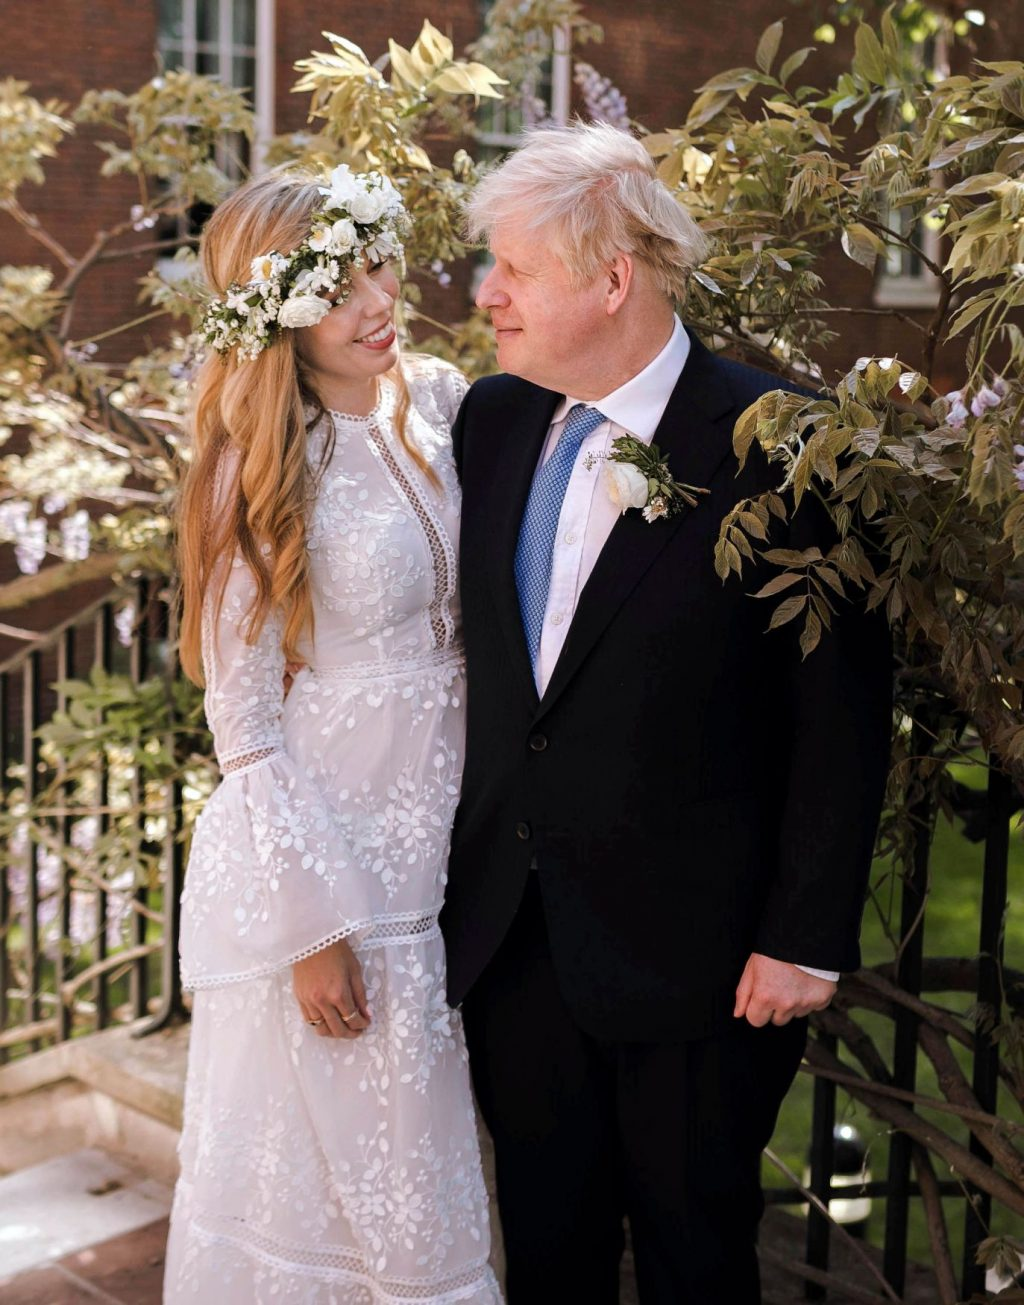 British Prime Minister Johnson remarried after two divorces.  The wife is younger than 23 years old